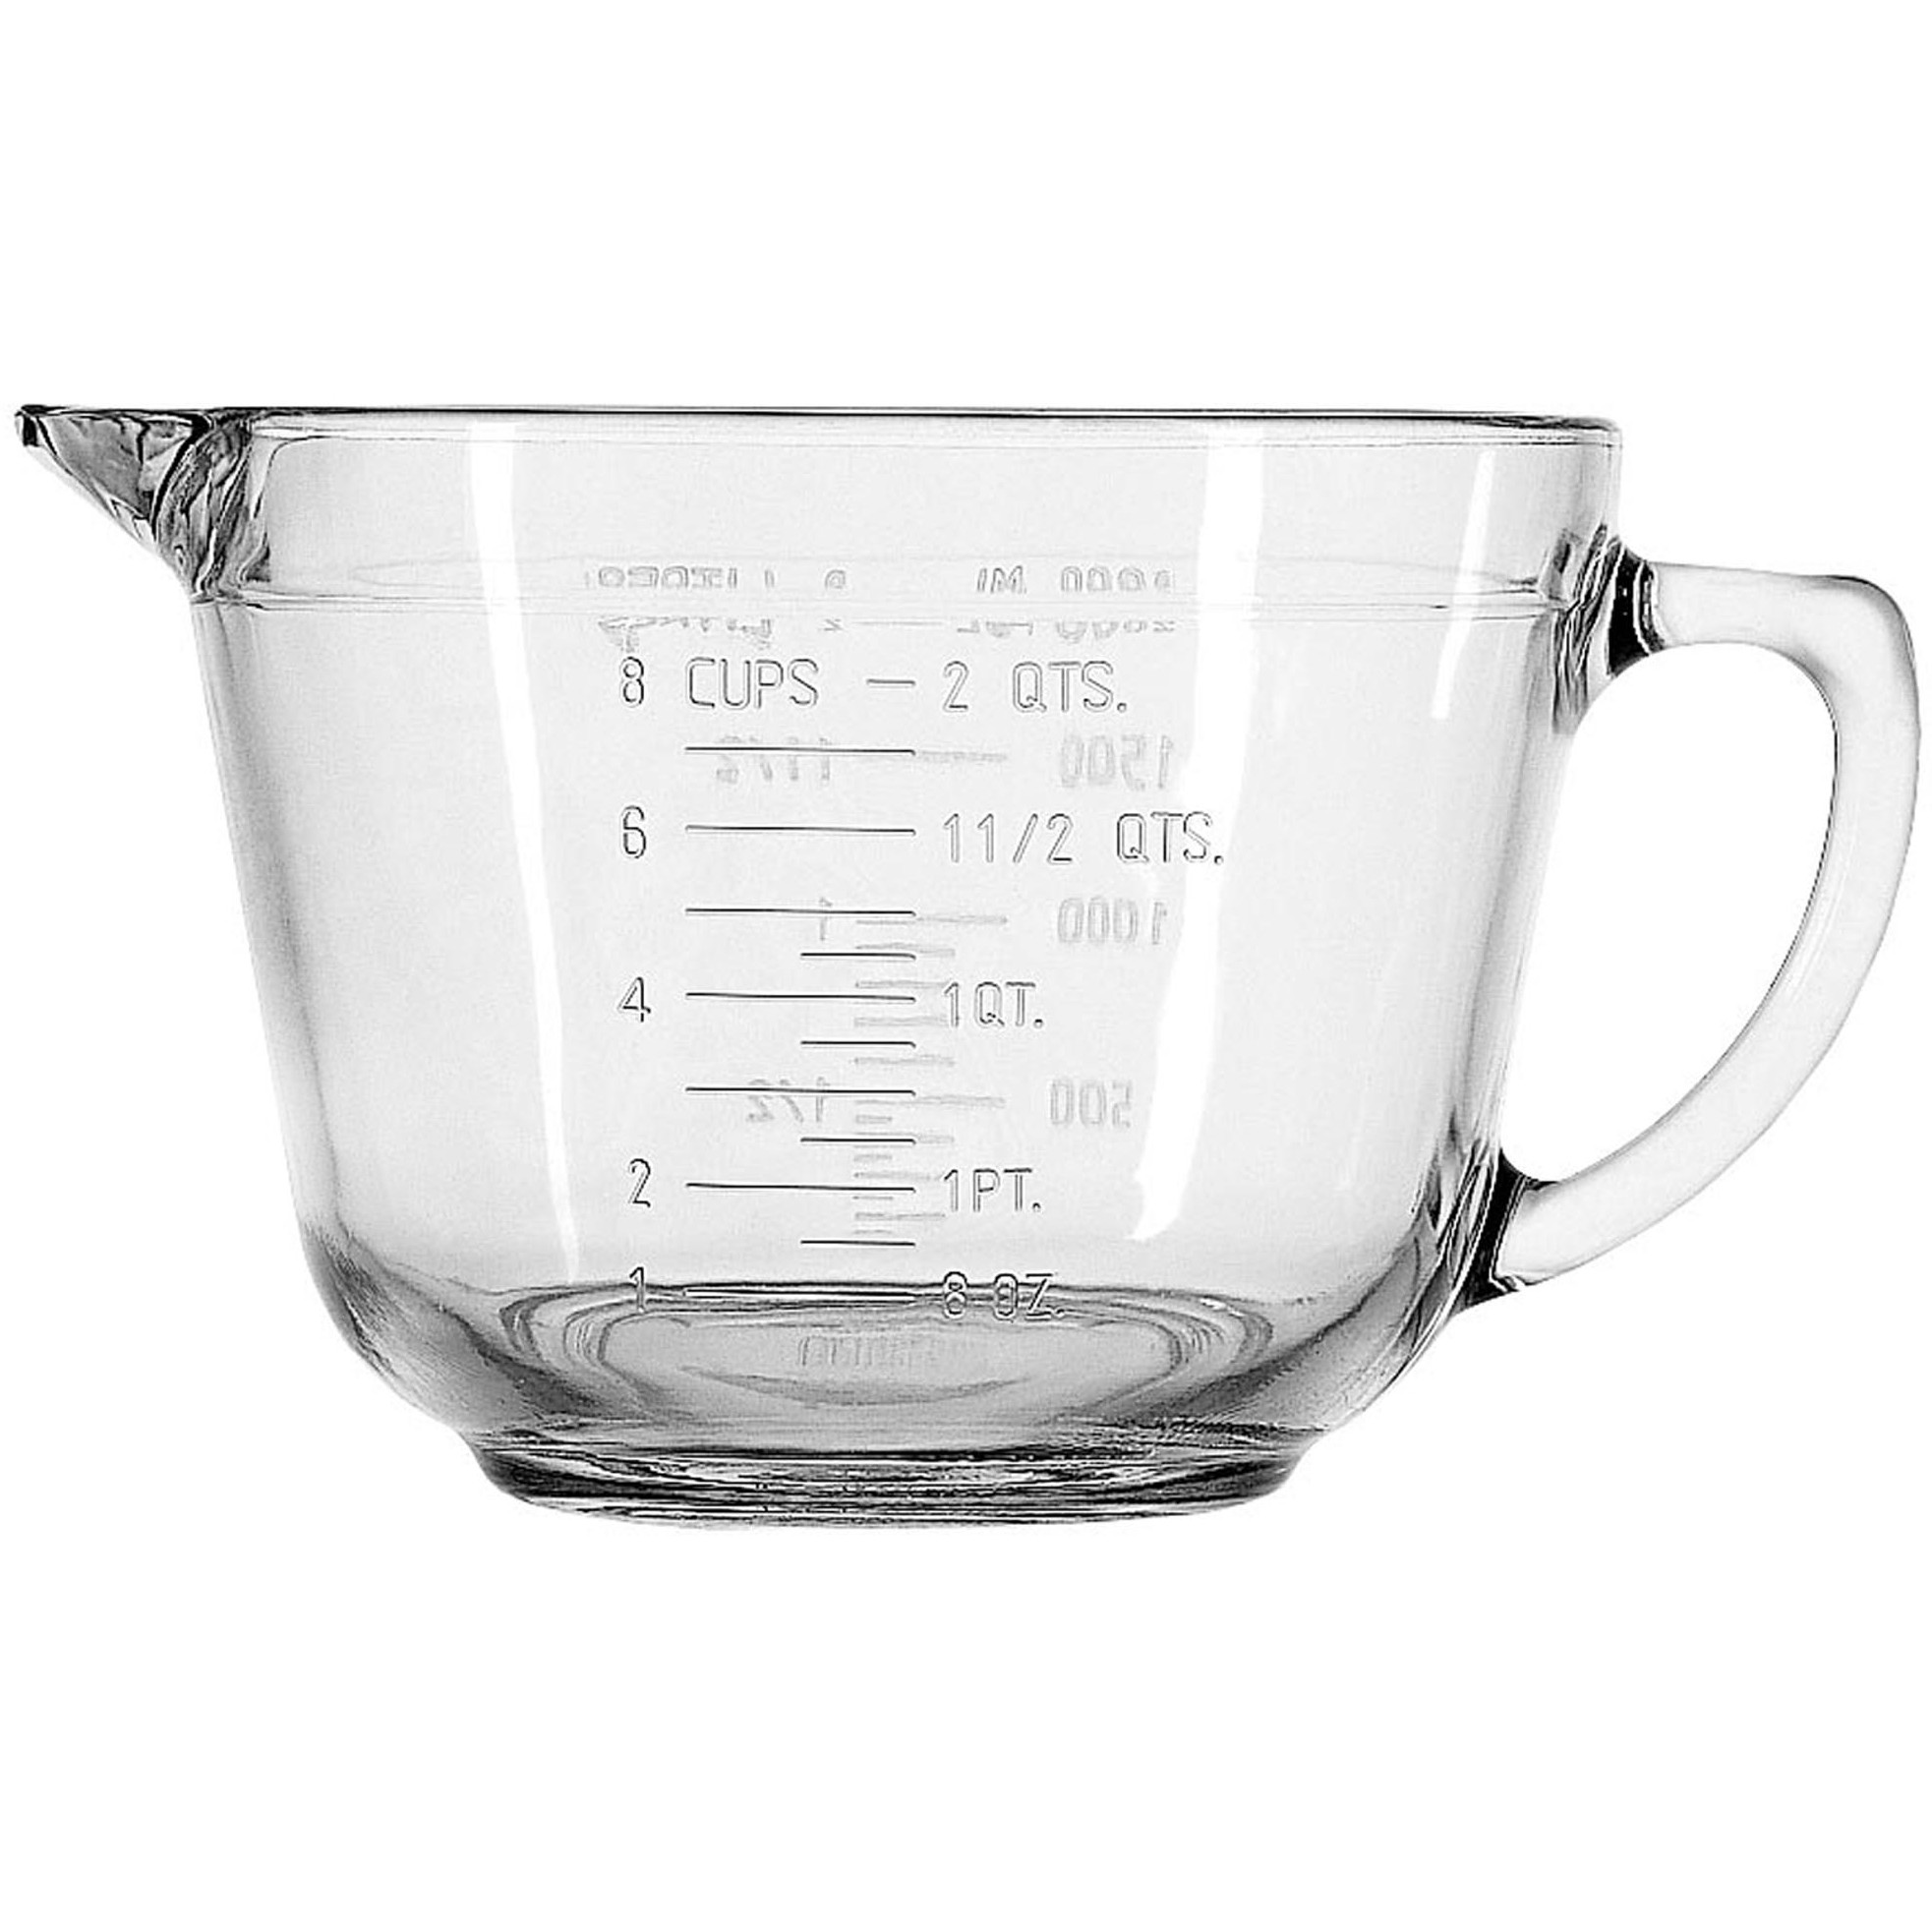 Anchor Hocking Glass Batter Measuring Bowl with Handle and Spout, 2 Quart